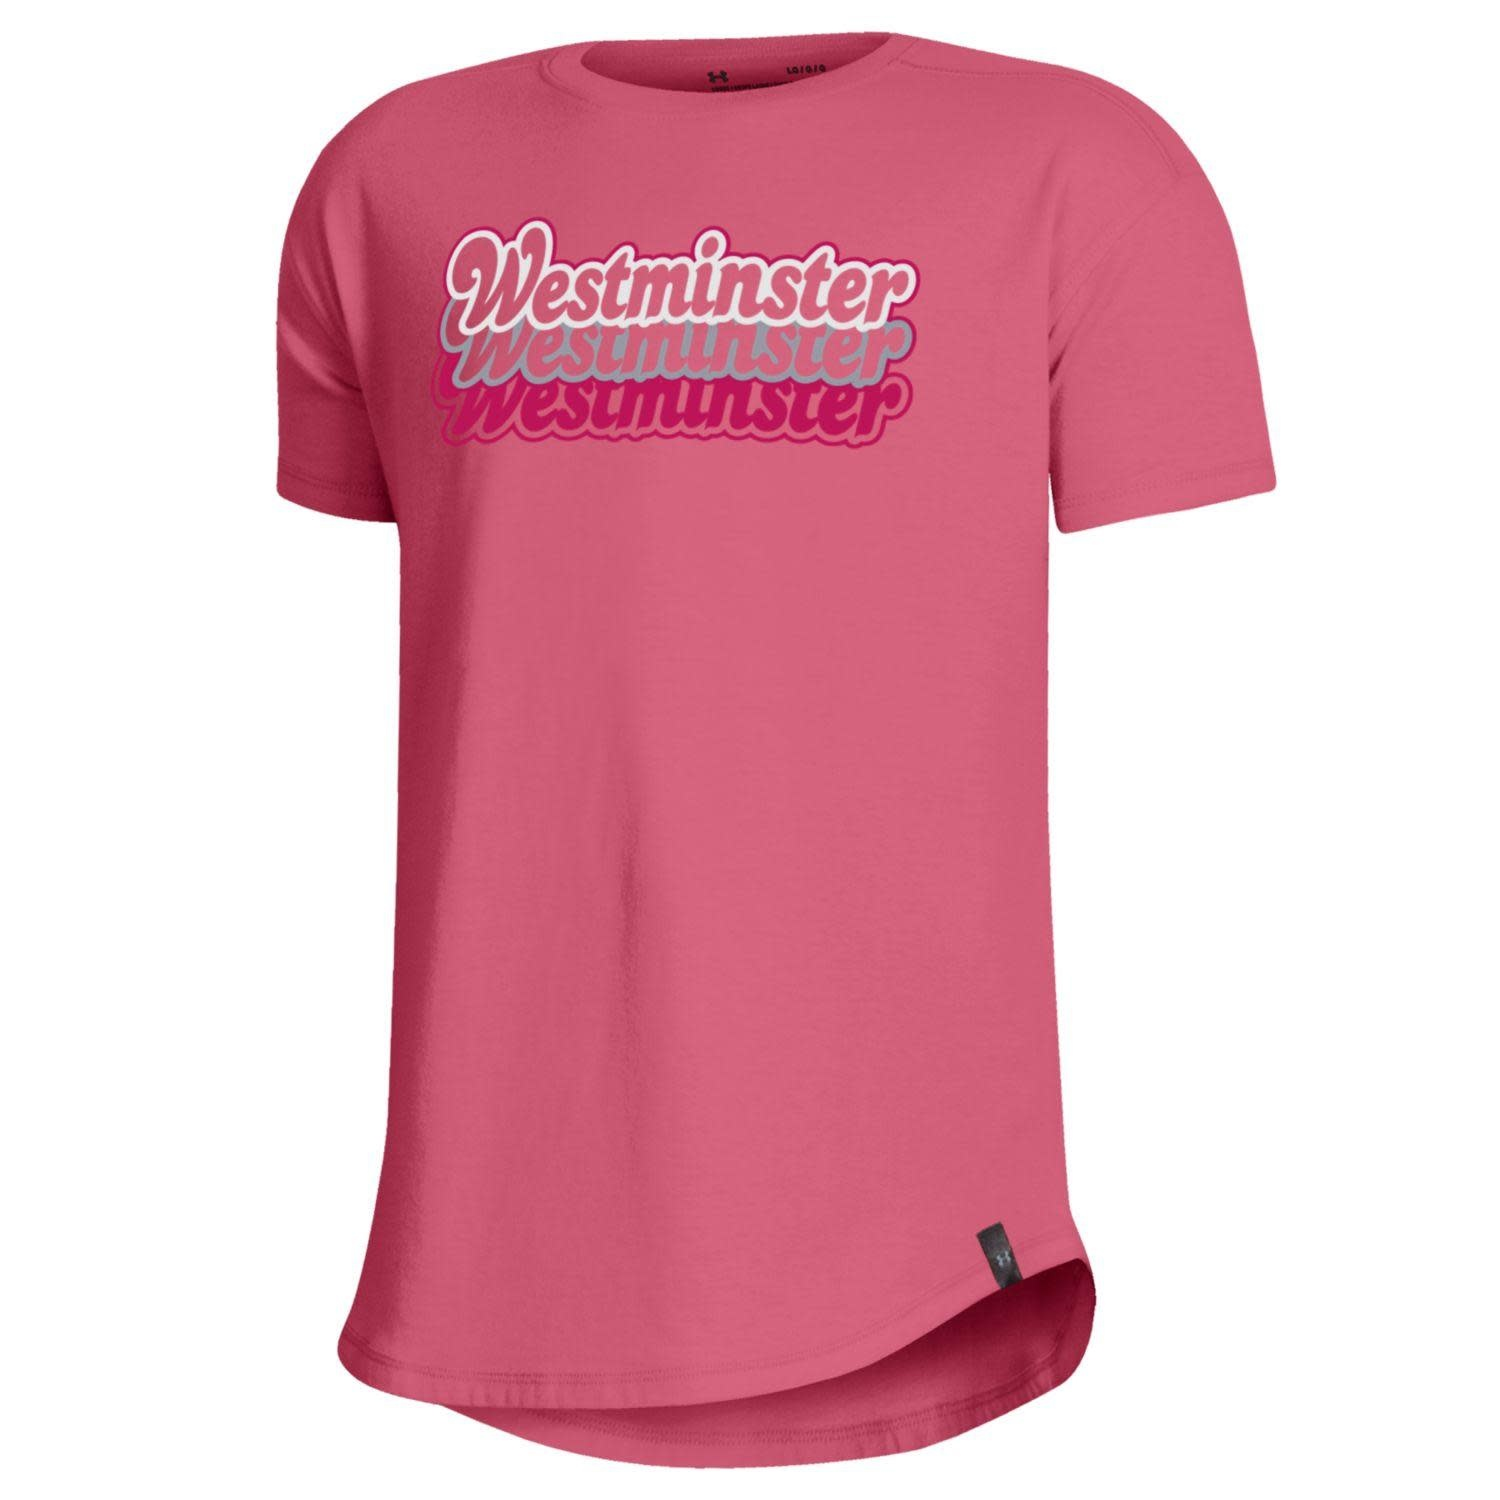 T: UA Girls Performance Cotton - Pink Lemonade, Silver Westminster